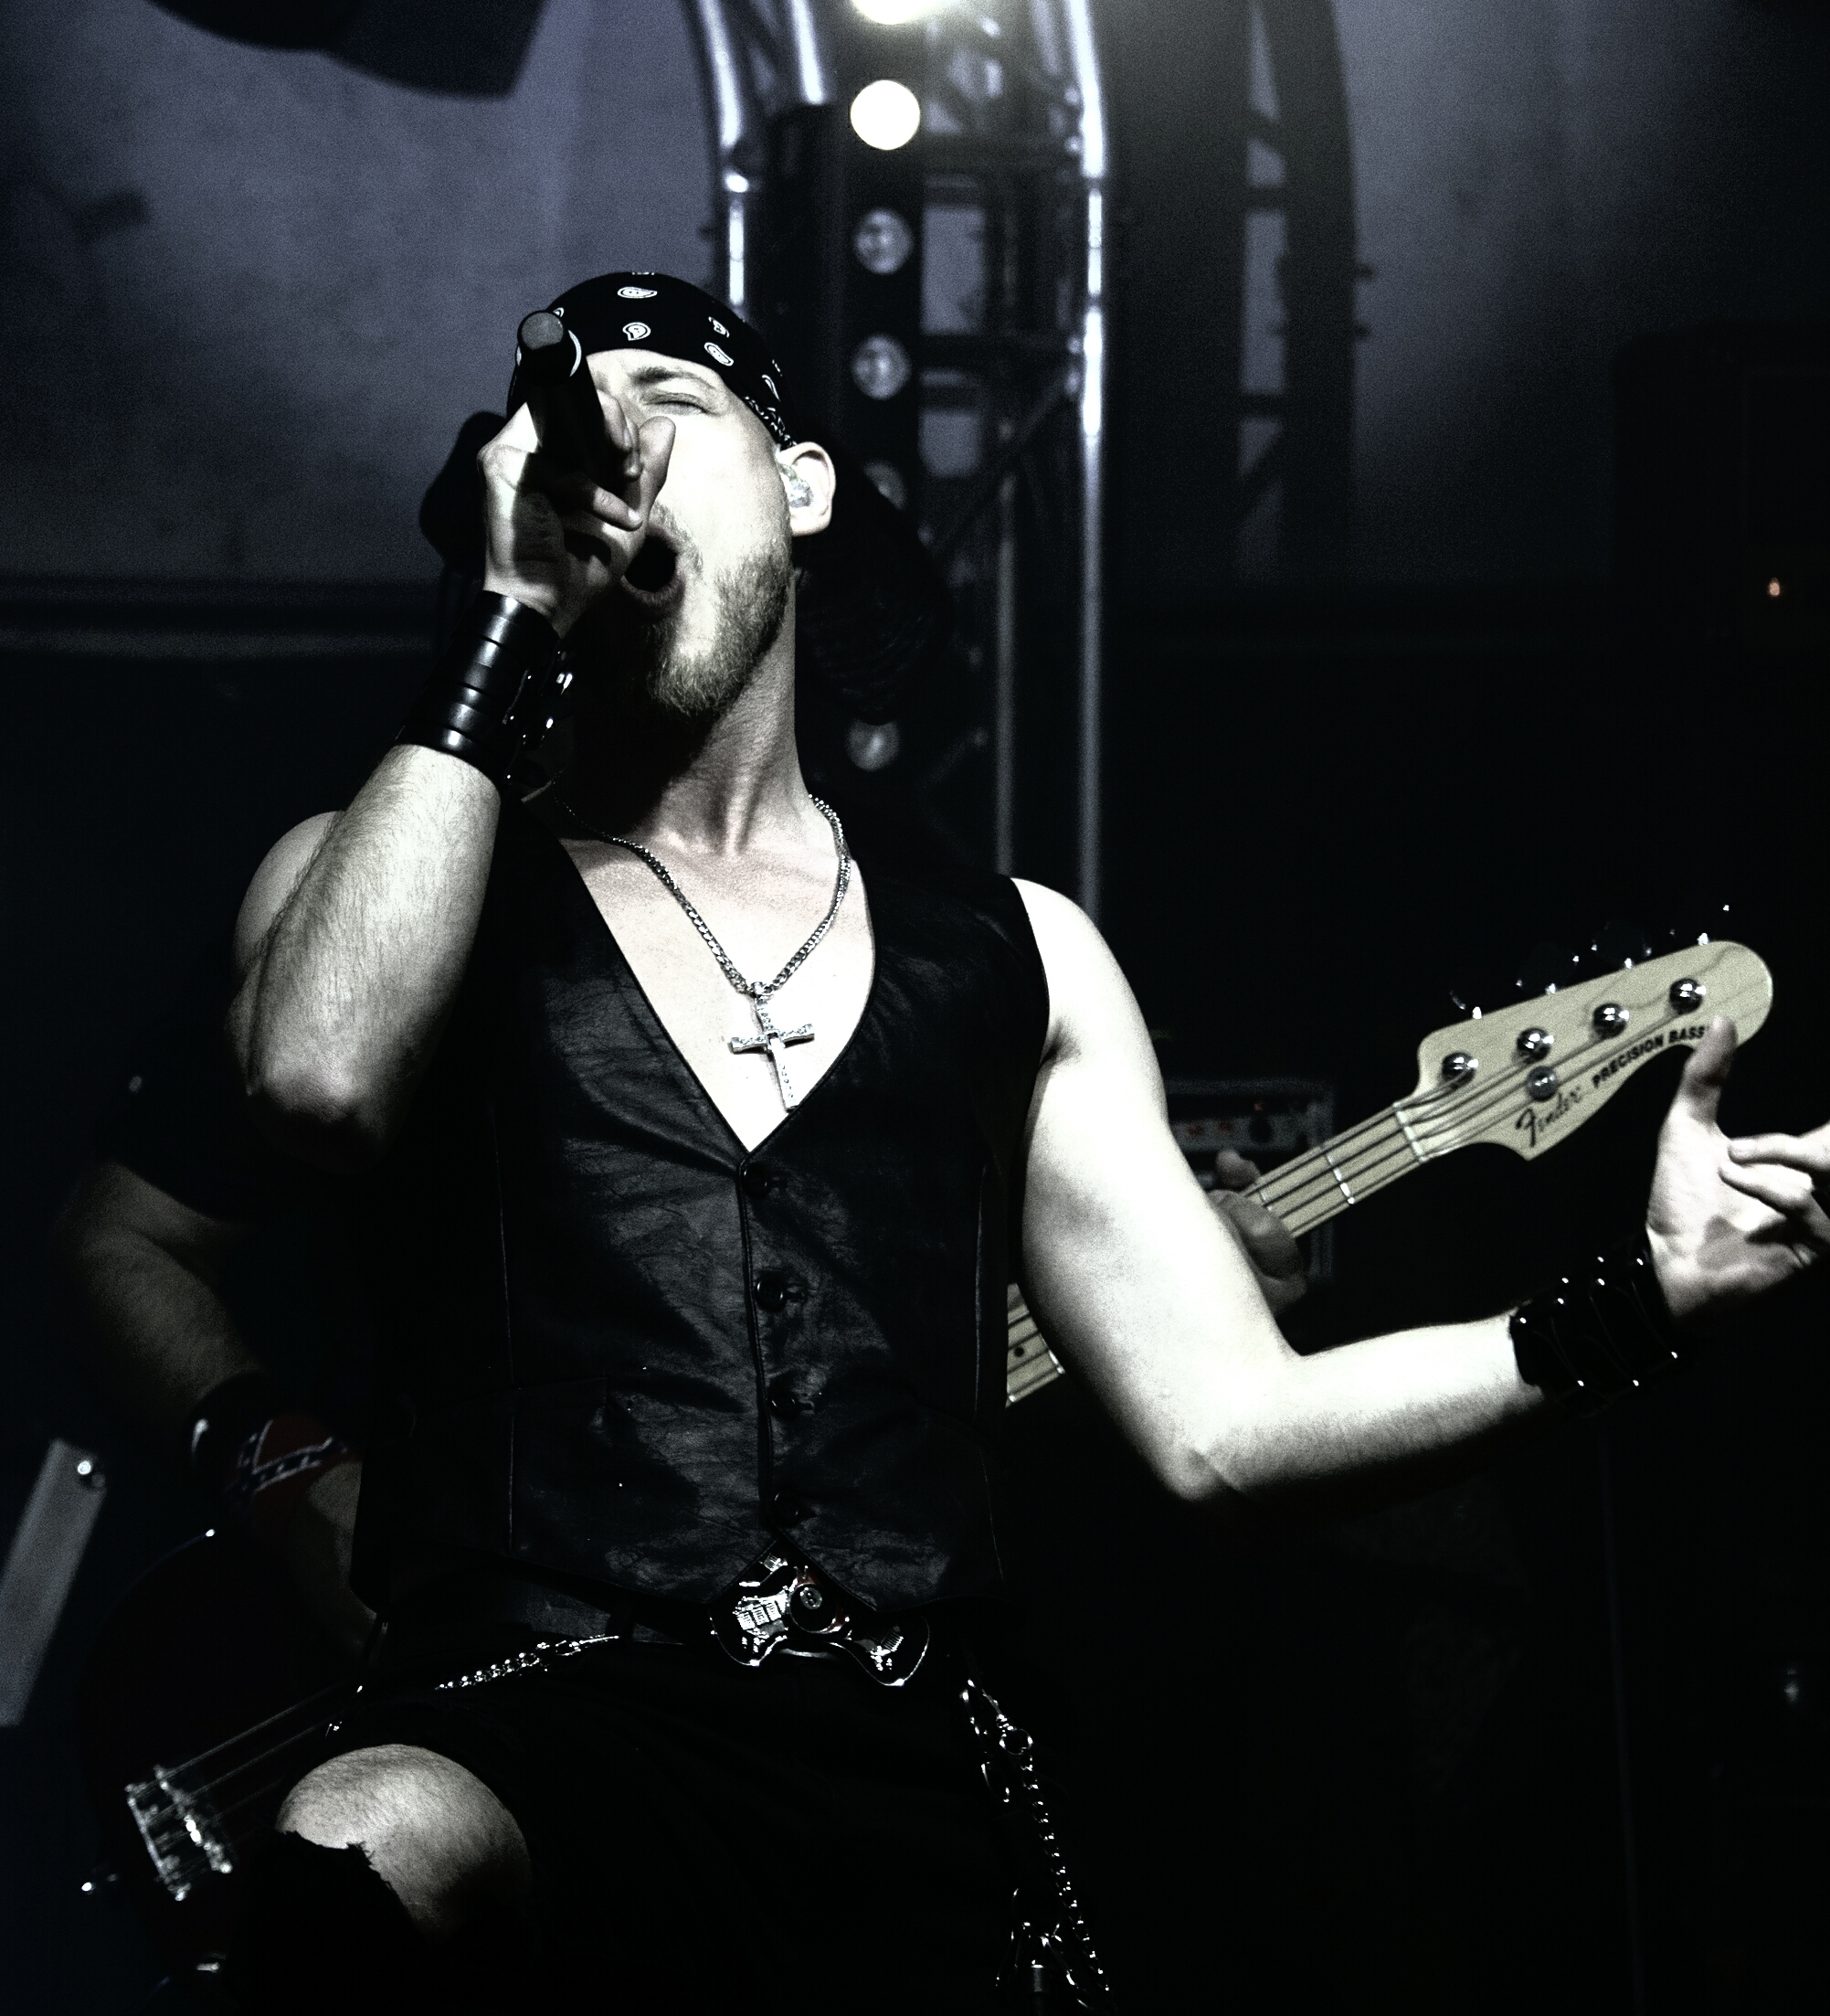 Leo Moertl - The Coverband Strongbow - Promopics - 0005